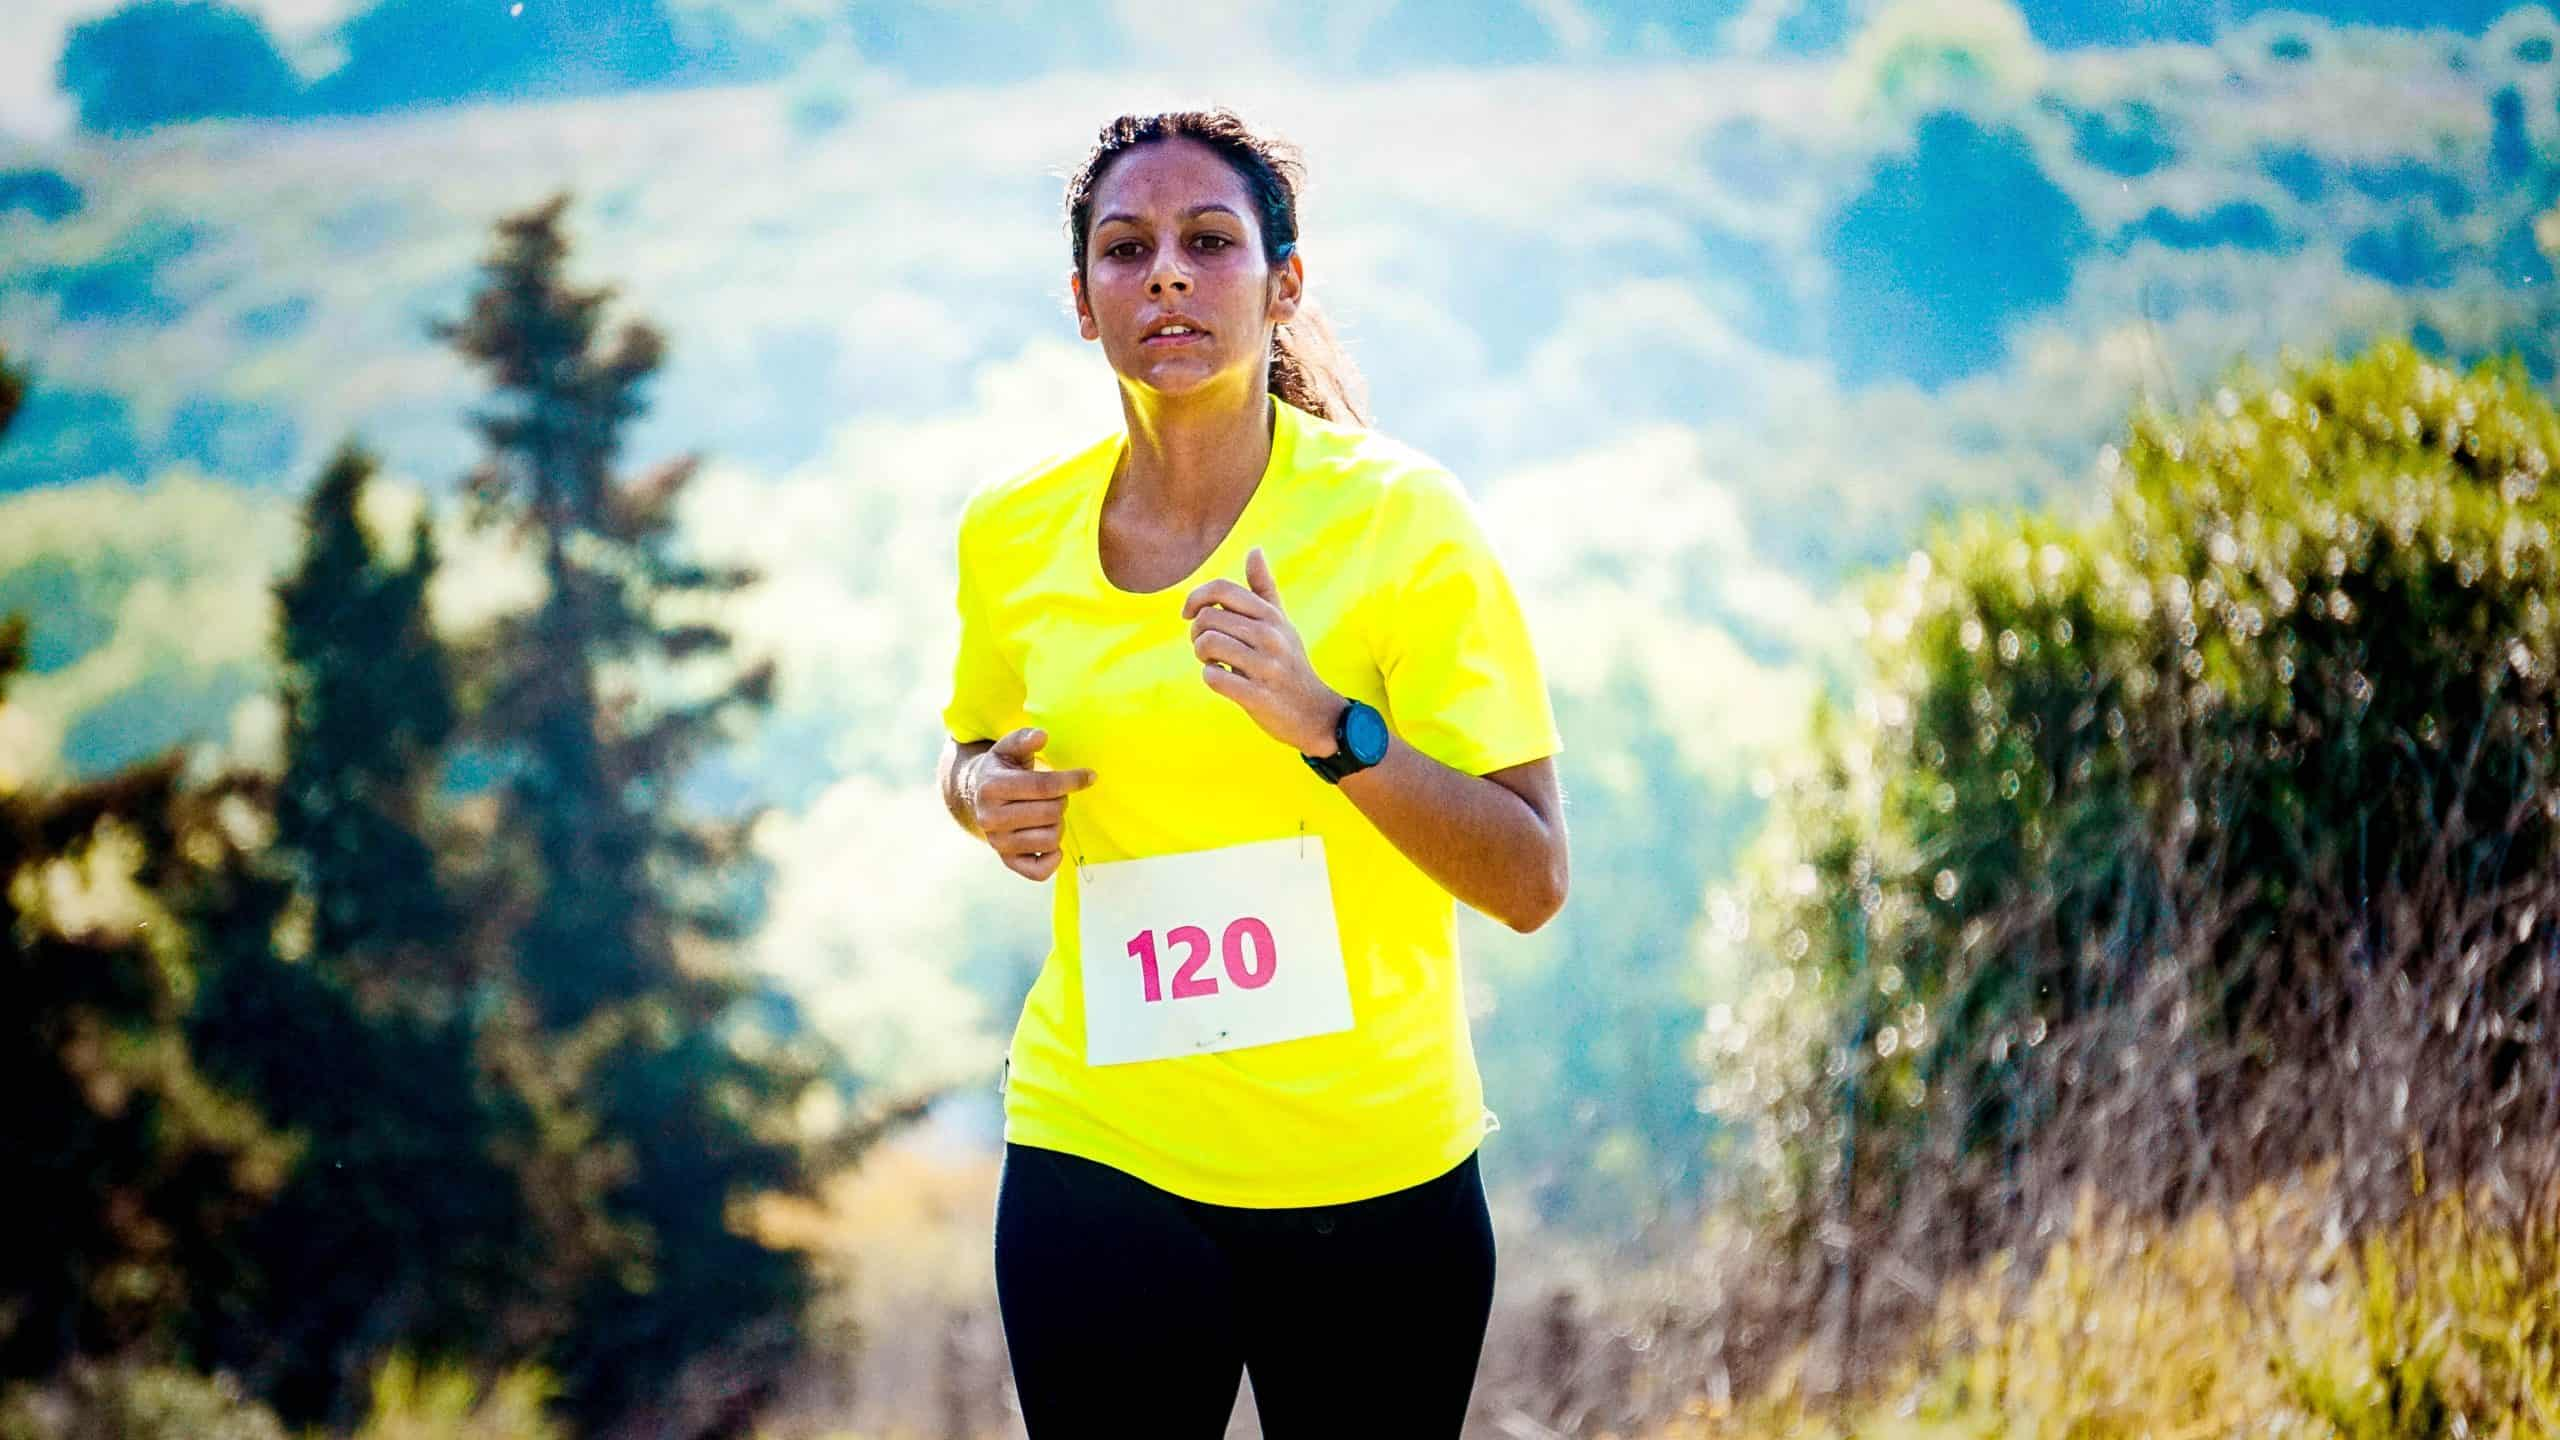 Running Tips To Improve Form And Efficiency